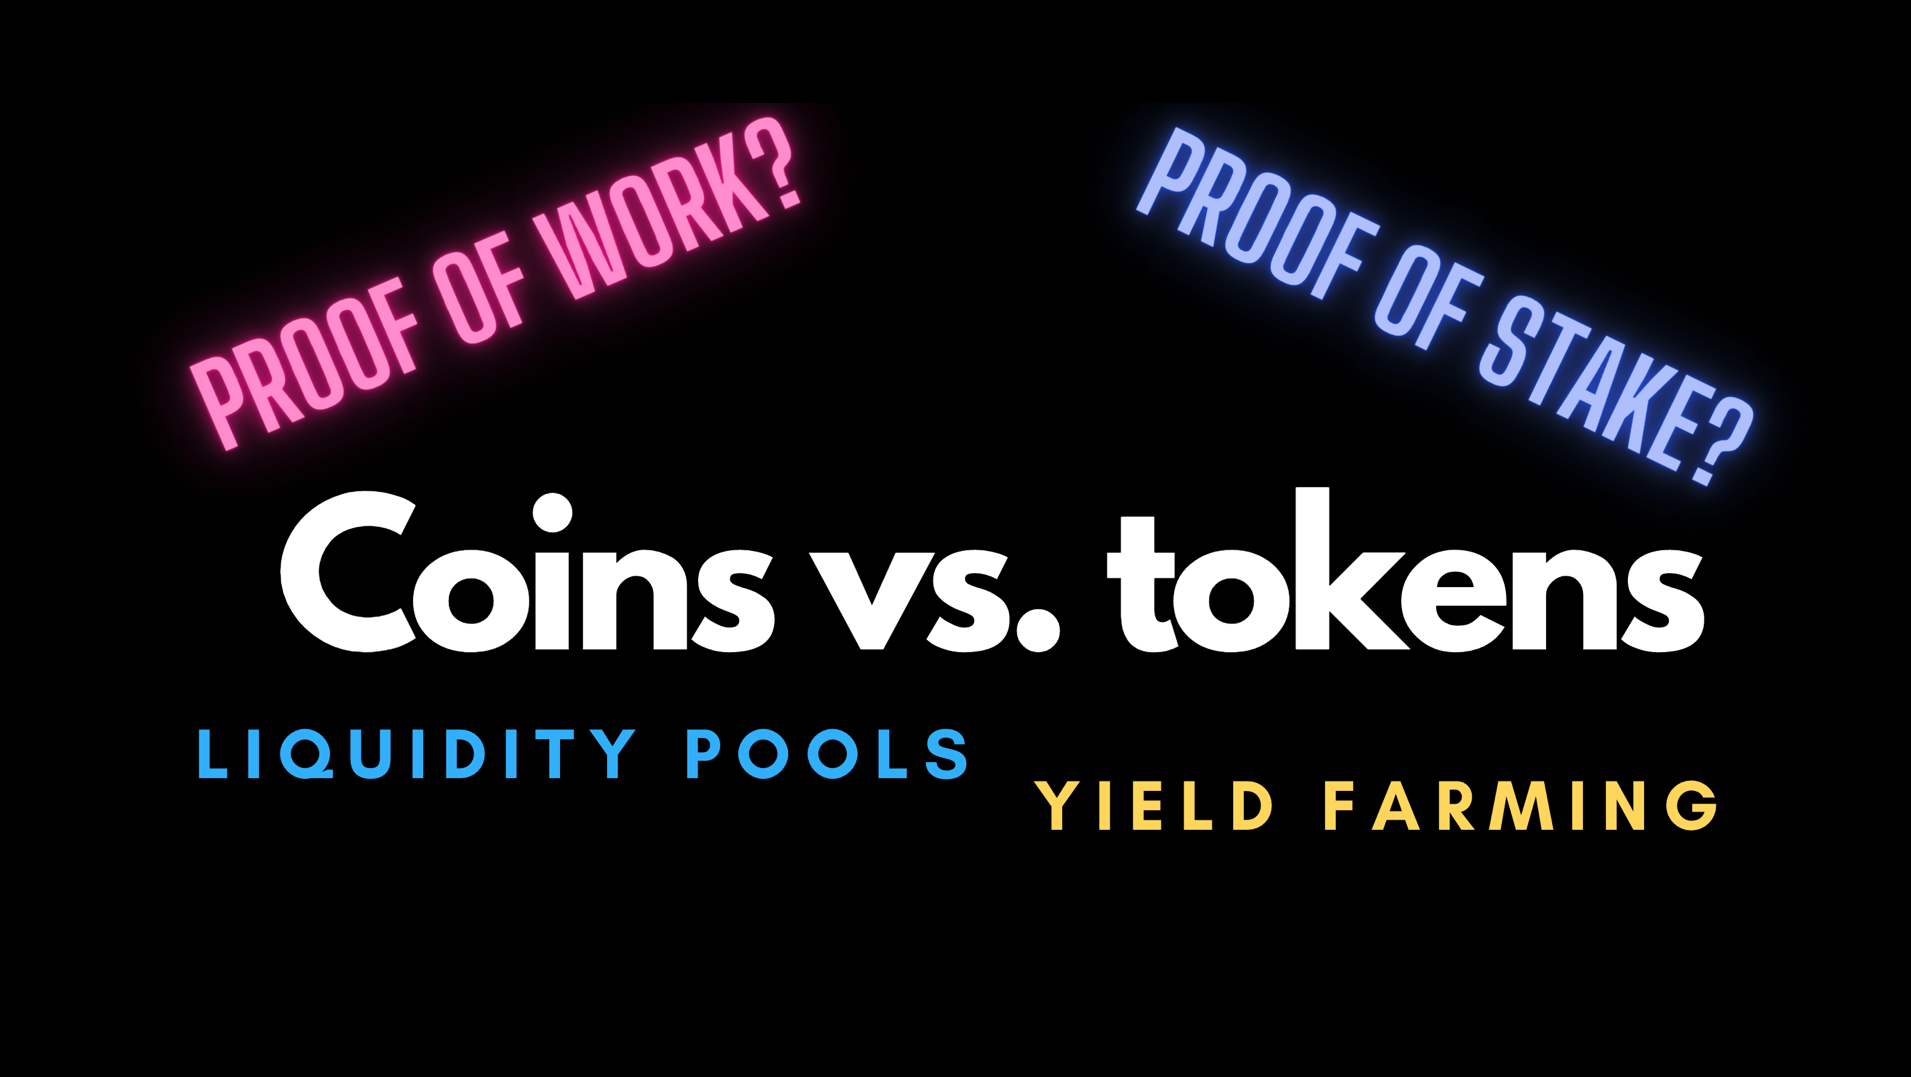 Coin vs token. Liquidity pools, yield farming. Proof of stake vs Proof of work. Cryptocurrency. Defi. Liquidity Provider.